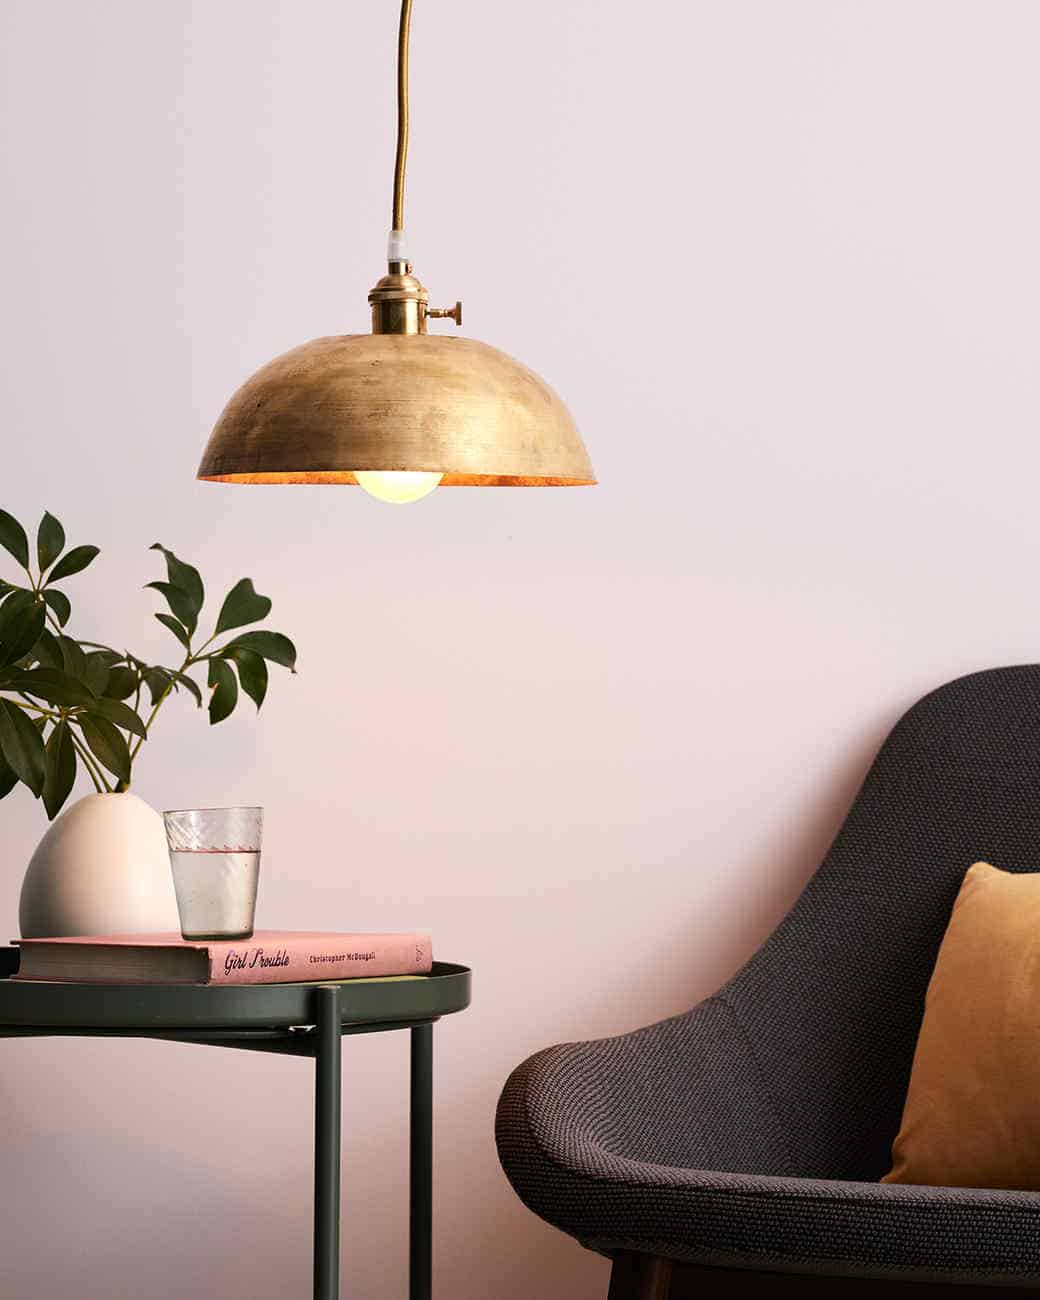 Diy copper brass pendant light